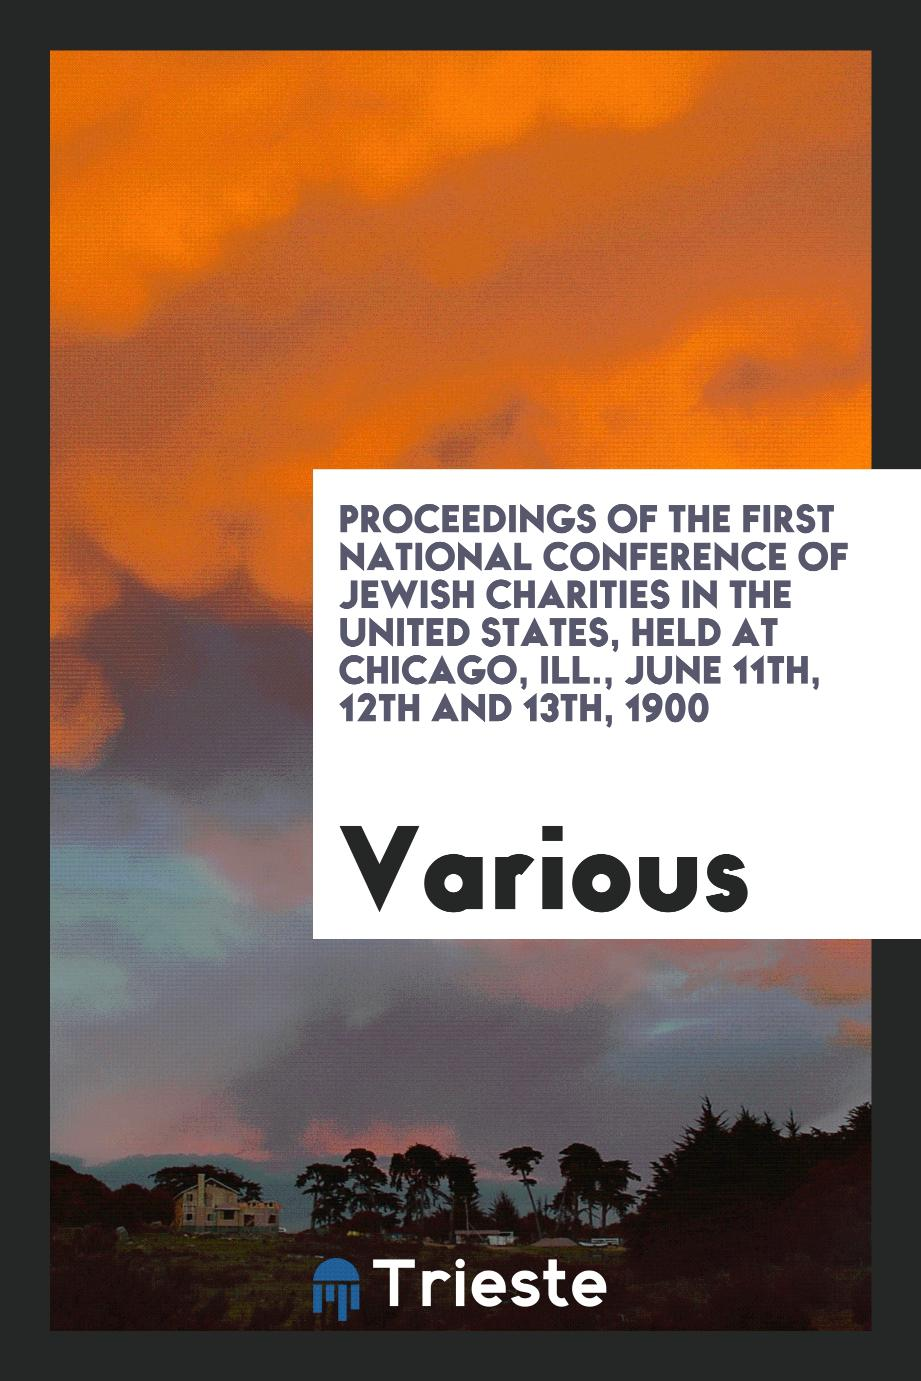 Proceedings of the First National Conference of Jewish Charities in the United States, Held at Chicago, Ill., June 11th, 12th and 13th, 1900